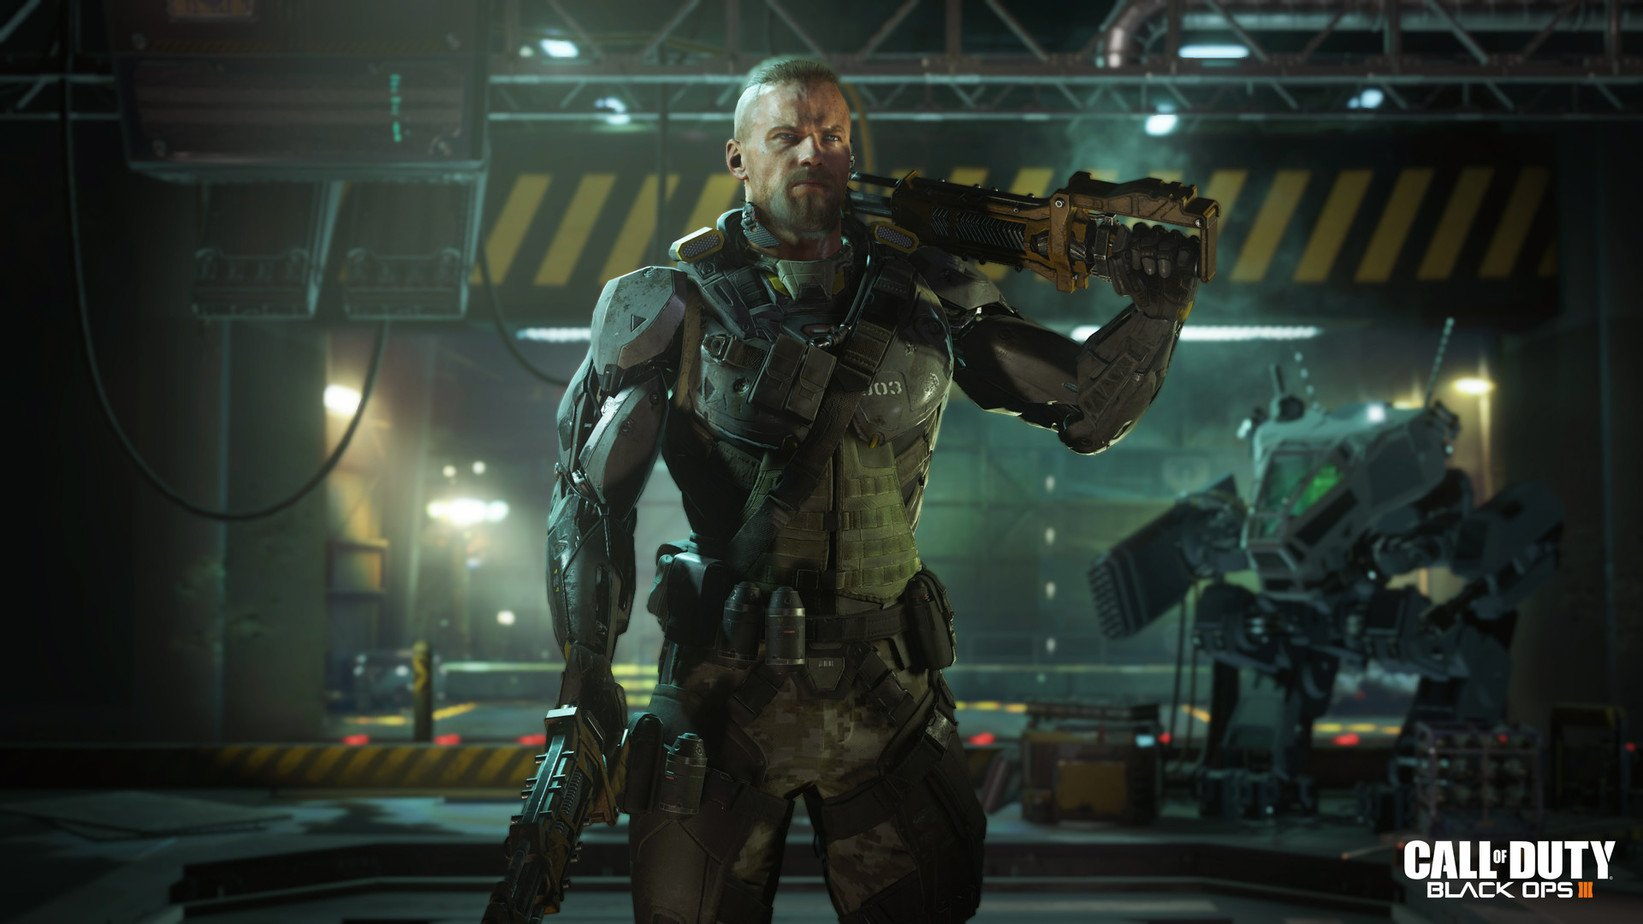 Call of Duty Black Ops III – Zombies Chronicles